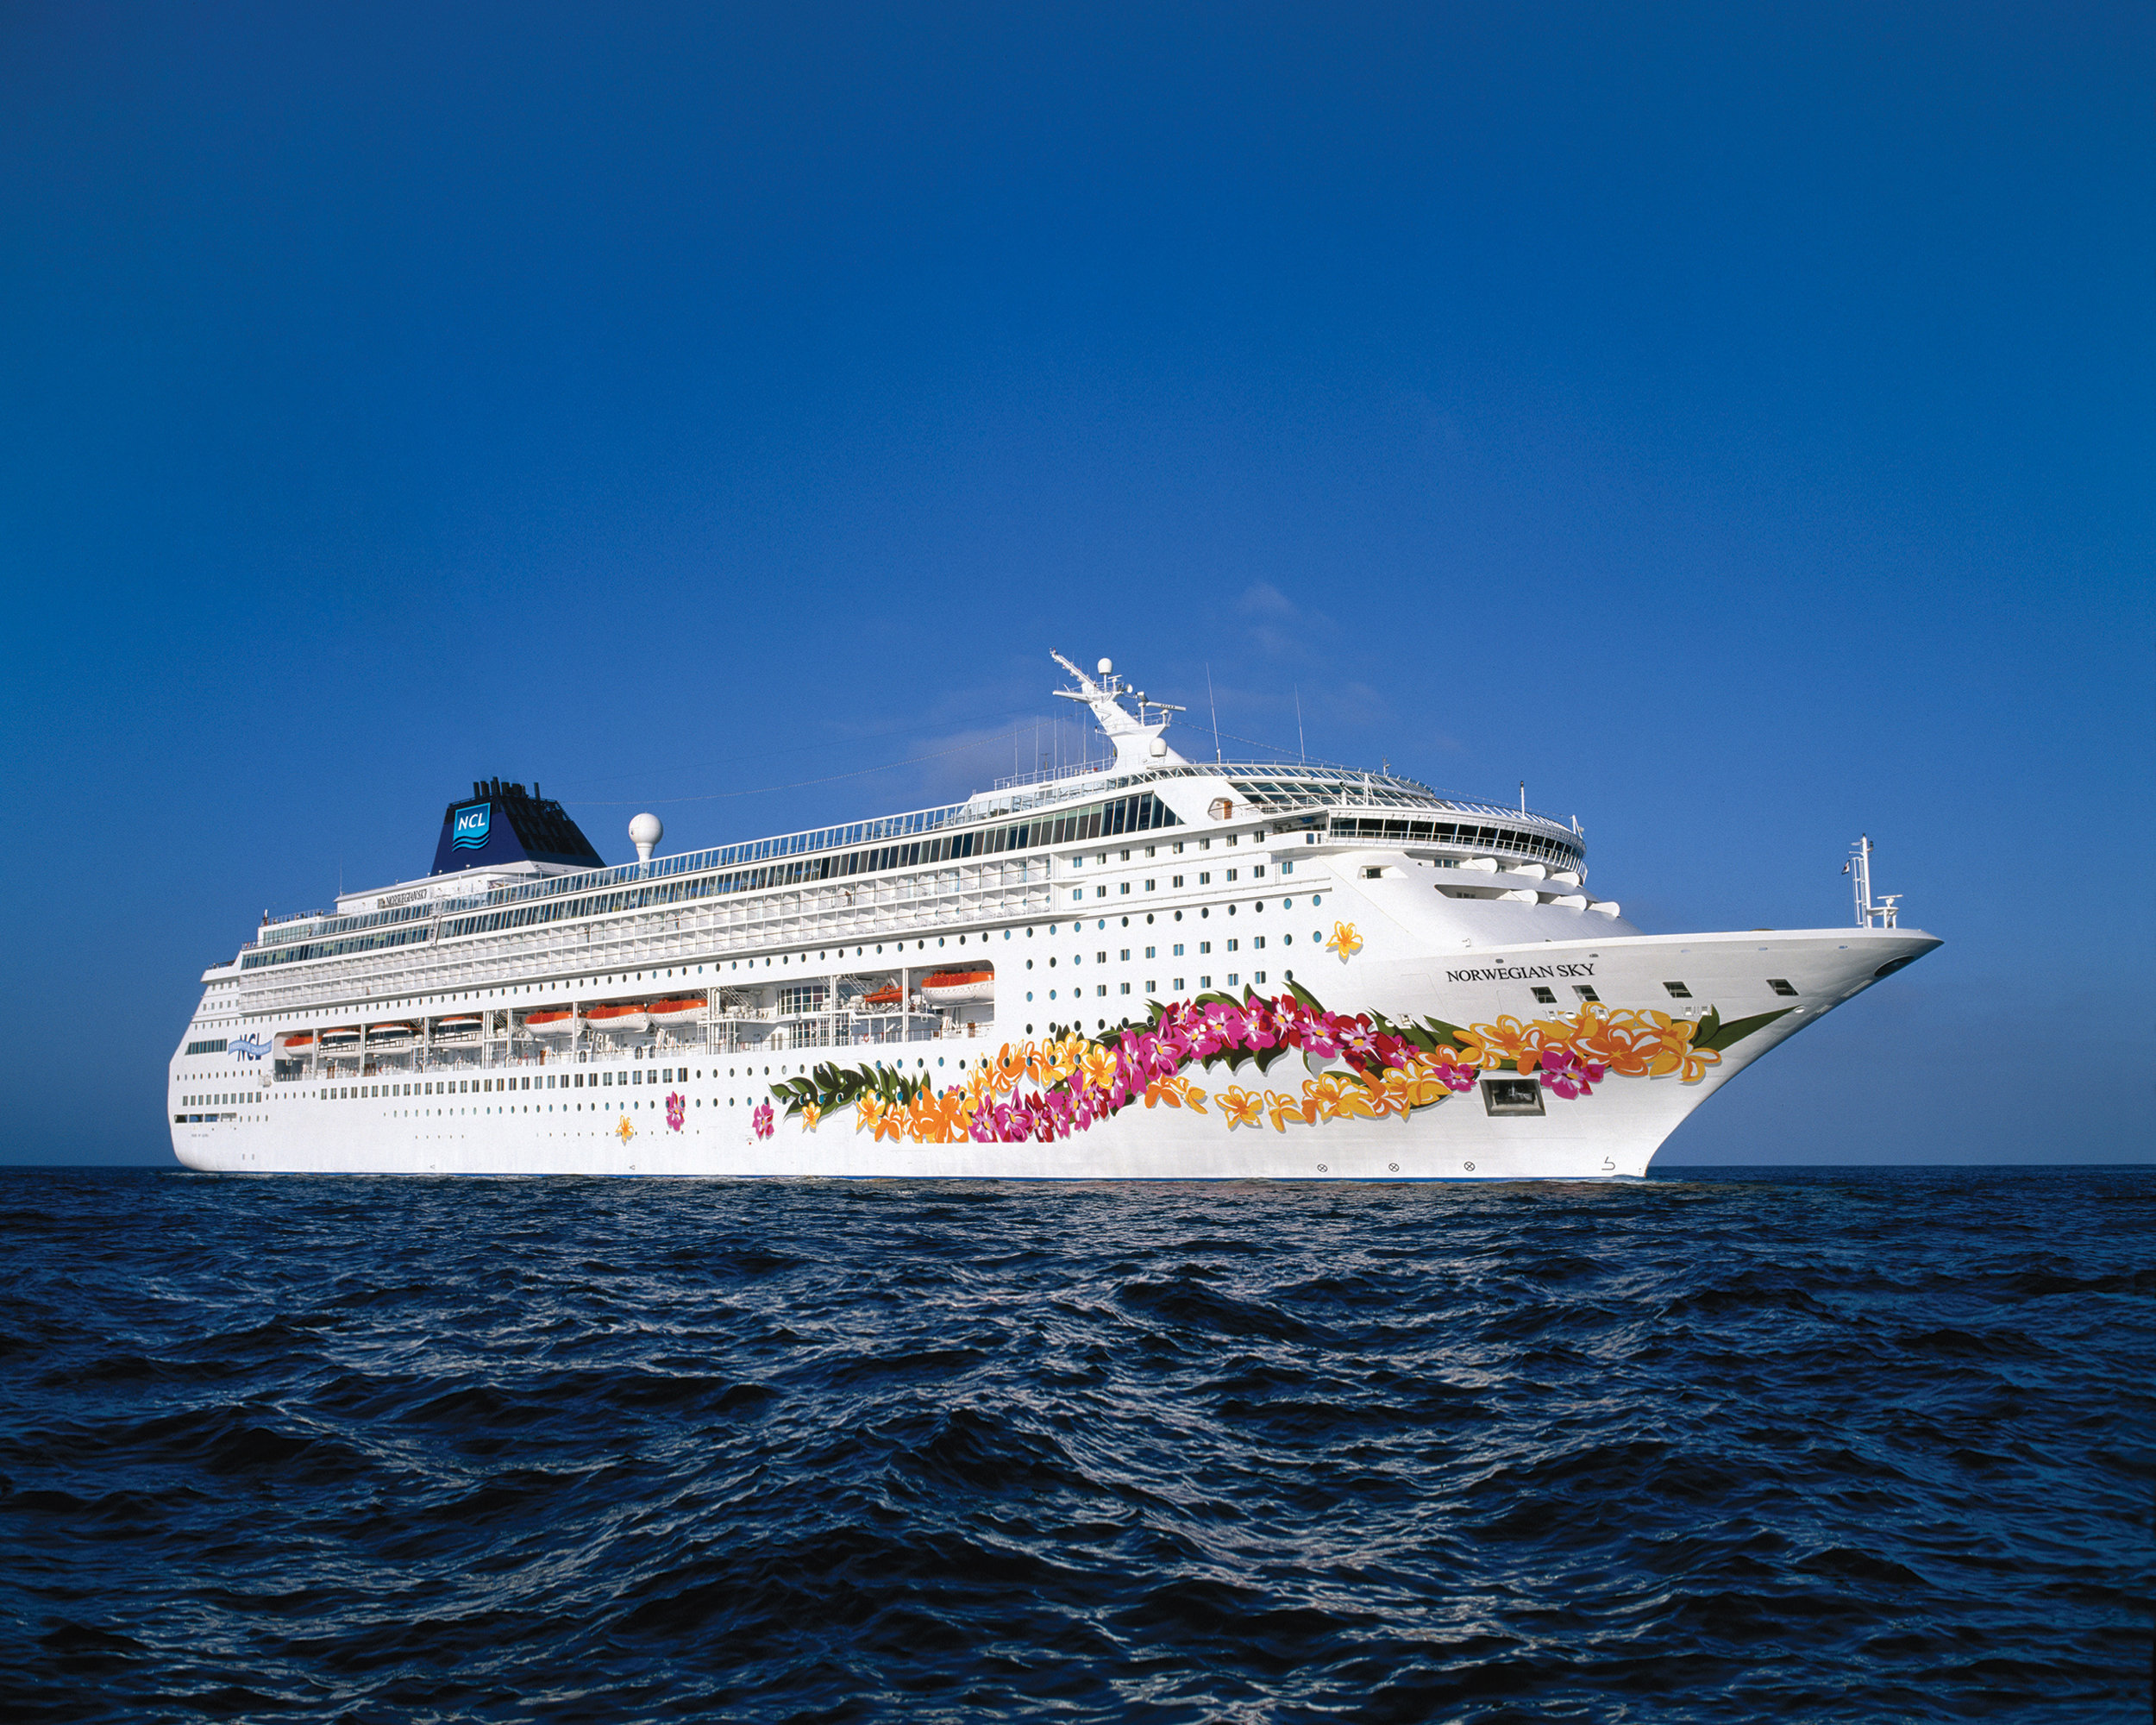 - Destination: The Norwegian Sky cruise for a 4-Day Bahamian CruiseEmbark: Port of MiamiStop 1: Key WestStop 2: Grand Bahama Island (Freeport)Stop 3: NassauDisembark: Port of Miami (near downtown)Currency: Bahamian Dollar (equivalent to US dollar) **No need for currency exchange**Recommendations: Carry small bills in cash for use on the islands as many excursions are based around the beaches. Credit card for activities surrounding resorts, hotels, cruises, and shopping. The most important recommendation for a cruise, ALWAYS carry your cruise key card and a picture ID! Some ports won't let you enter without both, some only require the key card. Don't let this prevent you from getting back on.